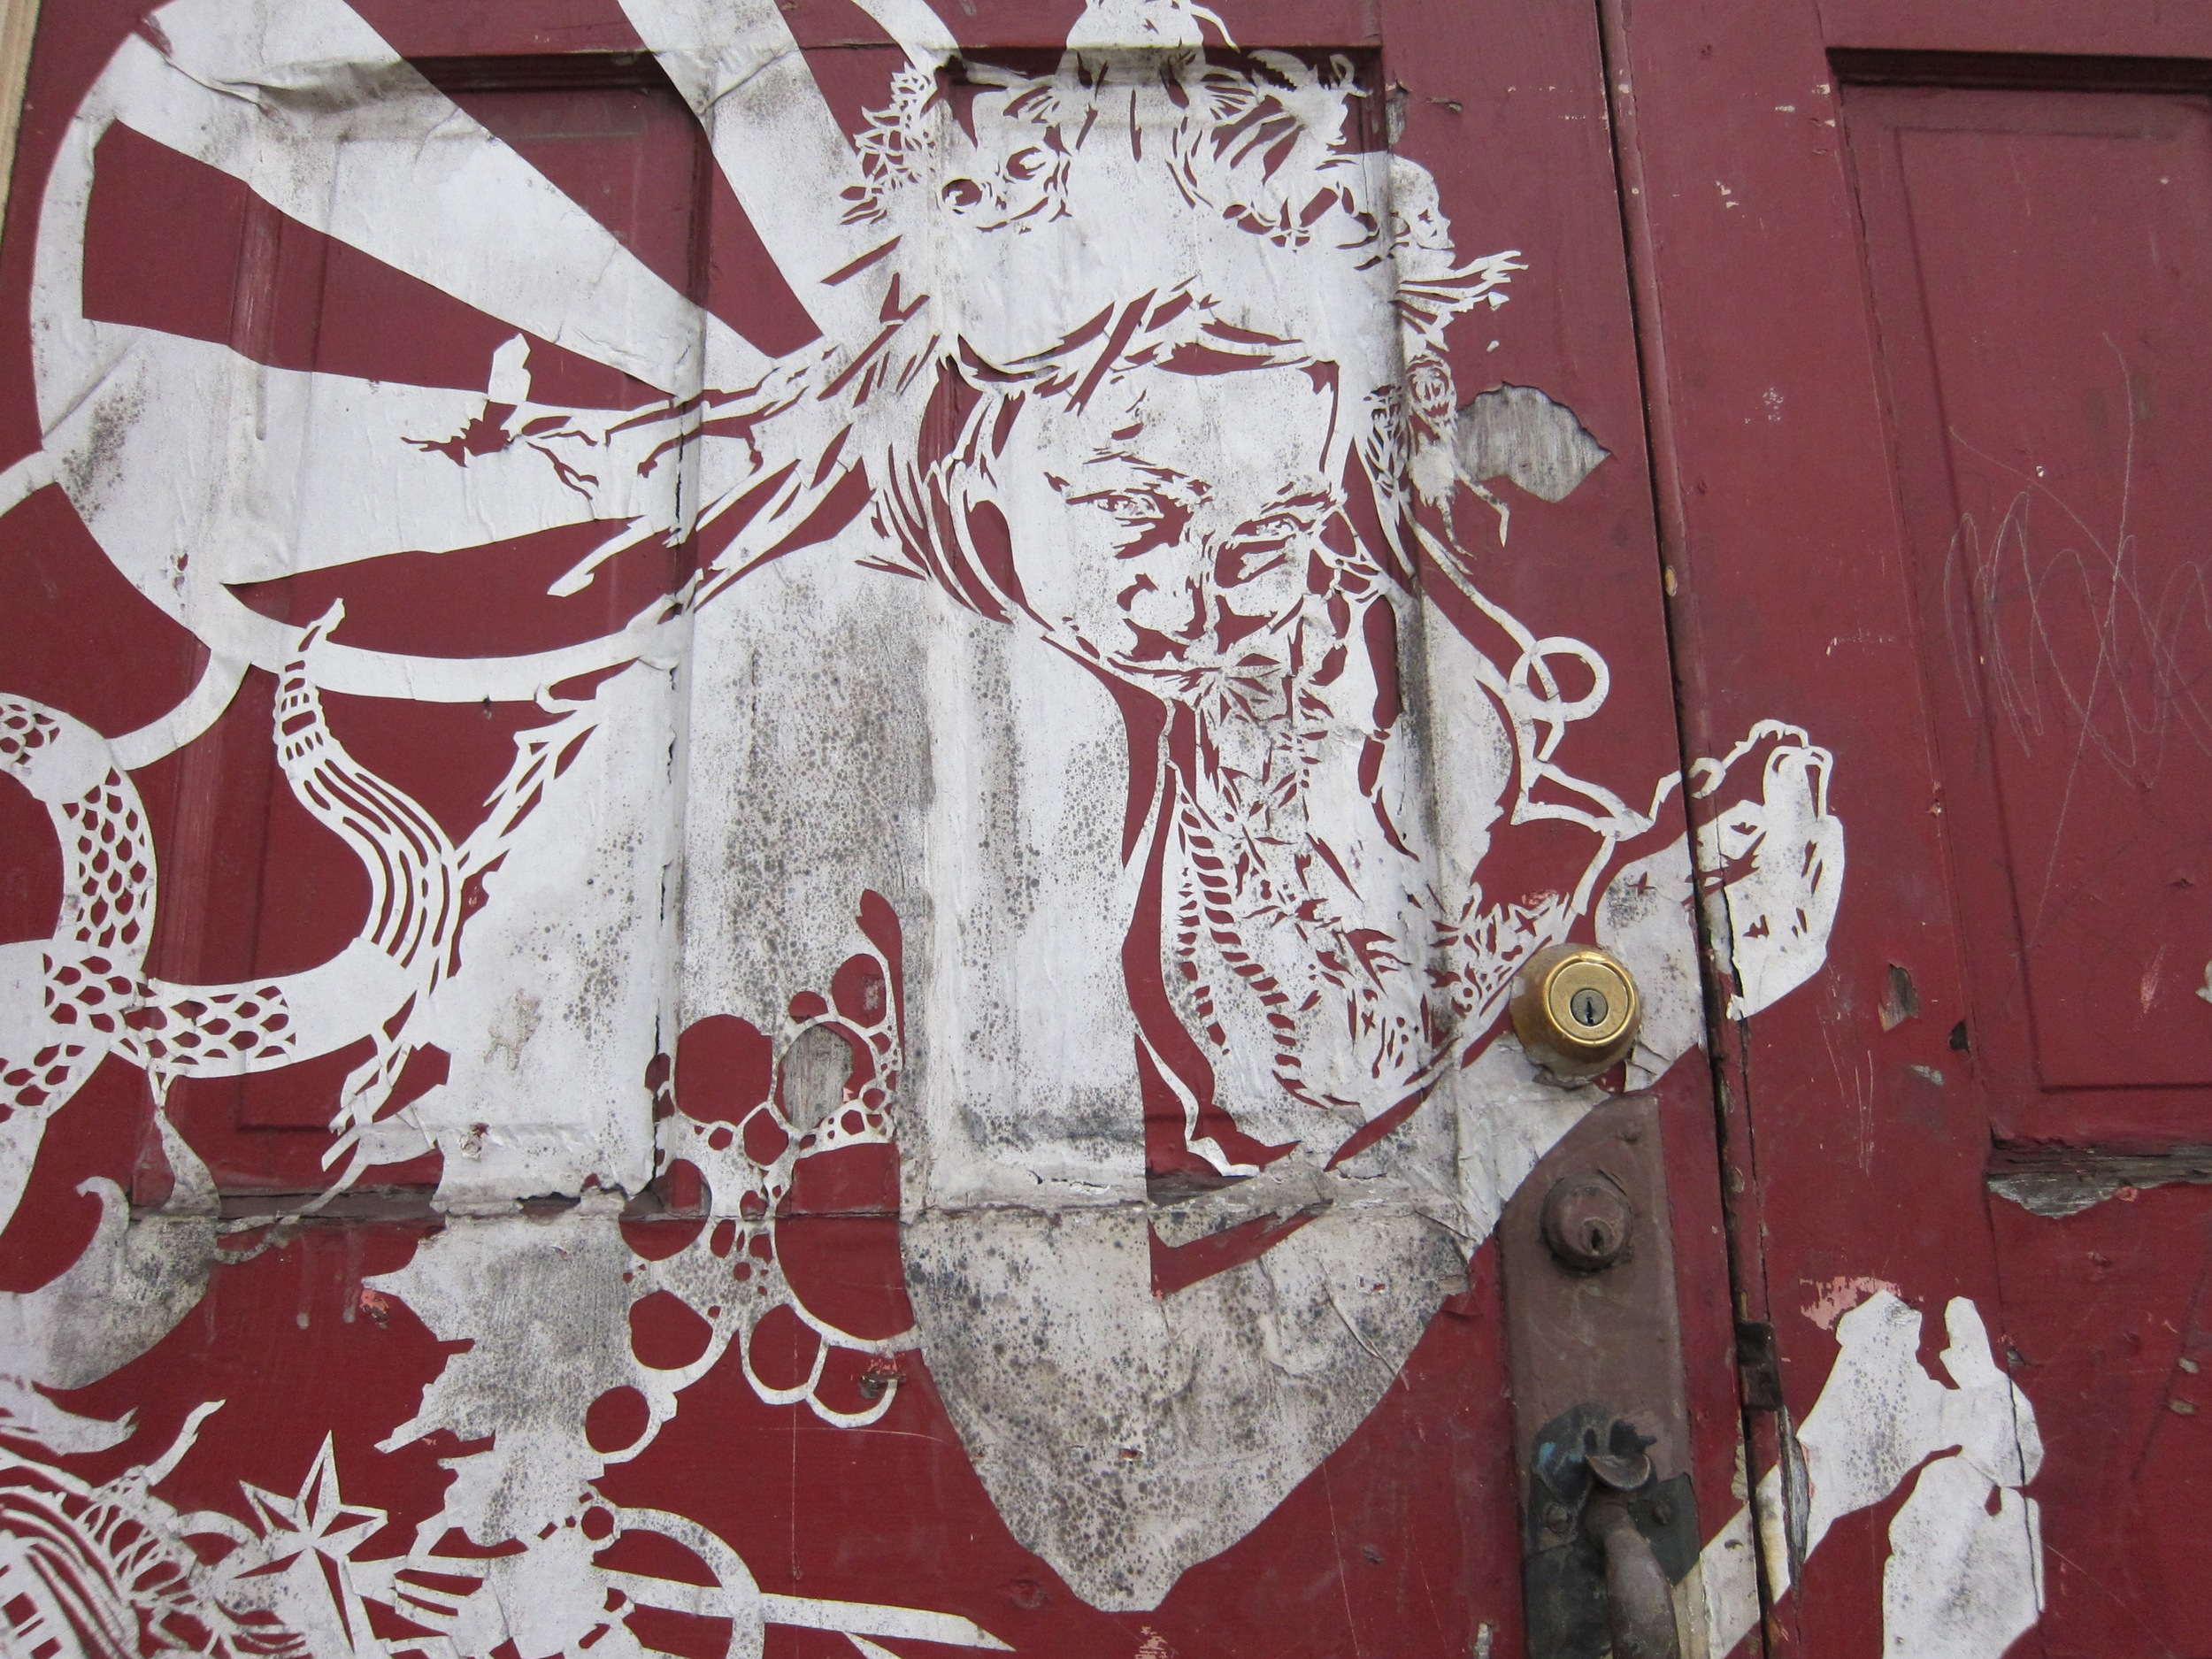 A 2010 pasted work adorning the door of a formerly abandoned church in Braddock, Pennsylvania – now home to the Braddock Tiles community arts initiative. ( Photo : Tod Seelie)